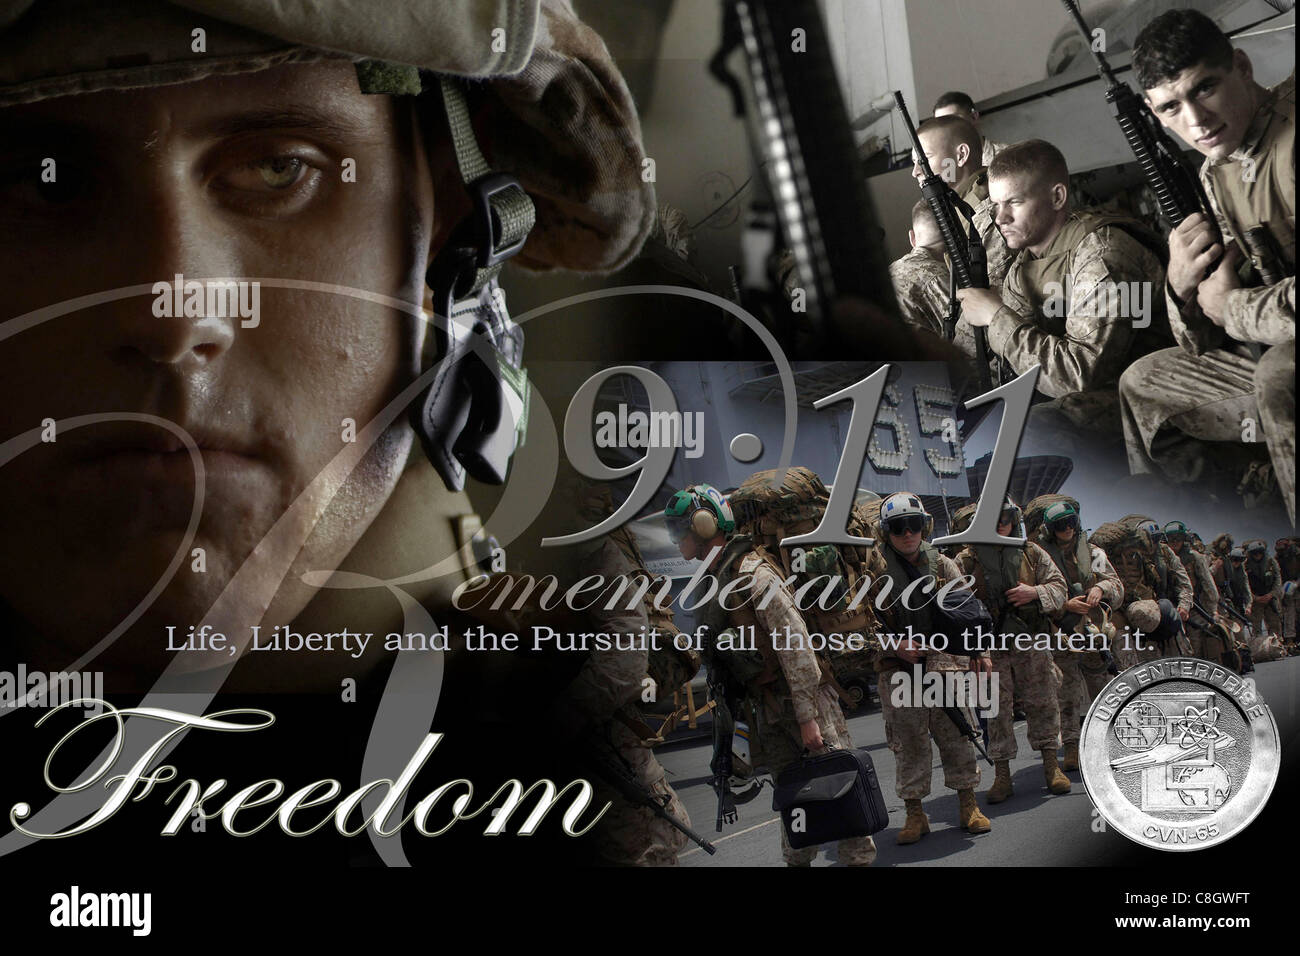 Illustration displays crew members taking the time during Operation Enduring Freedom to remember the tragedy which - Stock Image